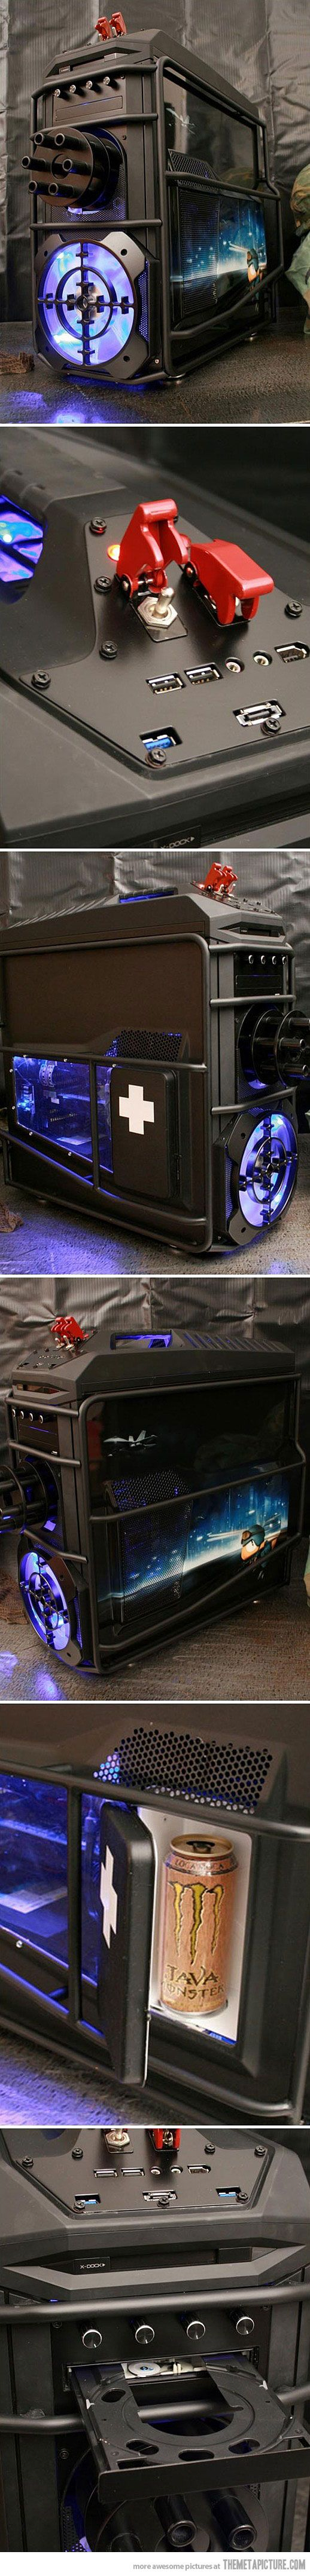 funny-computer-case-mod-Battlefield